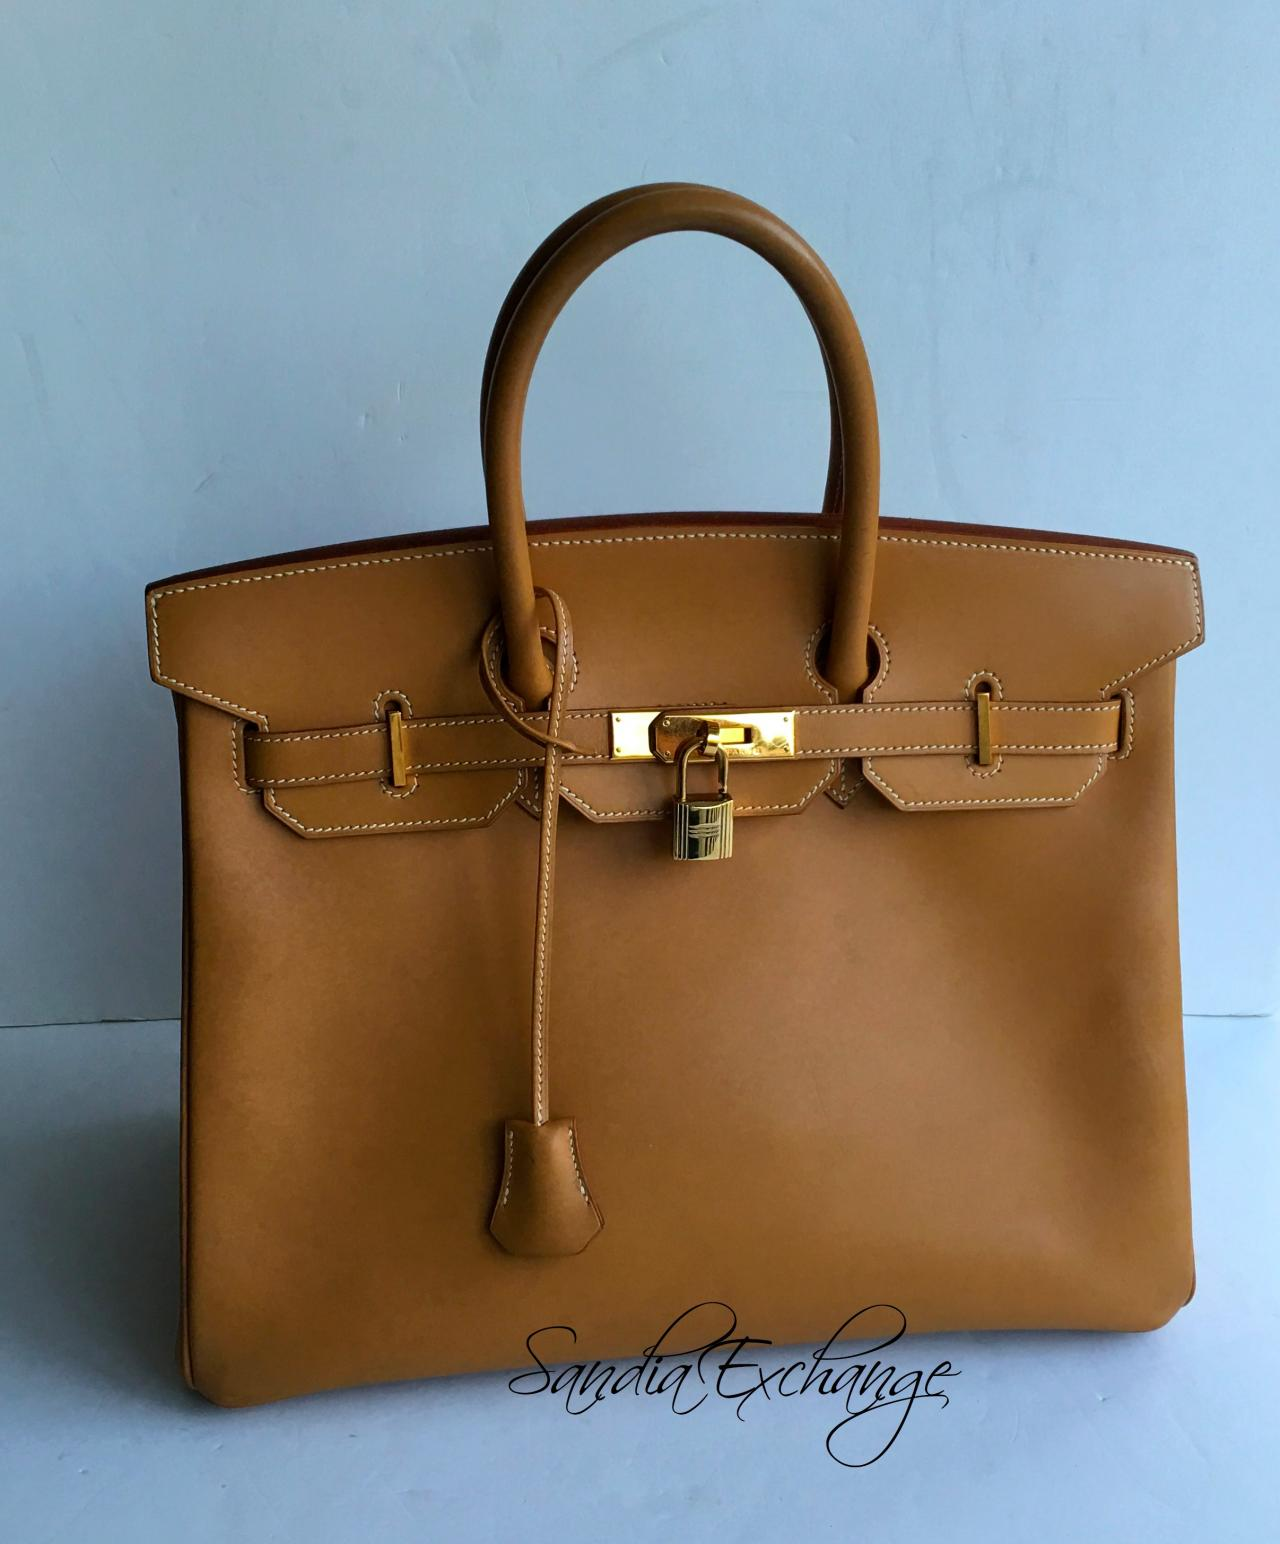 hermes-birkin-35-cm-vache-natural-gold-hardware-authentic-herm-s-3.jpg